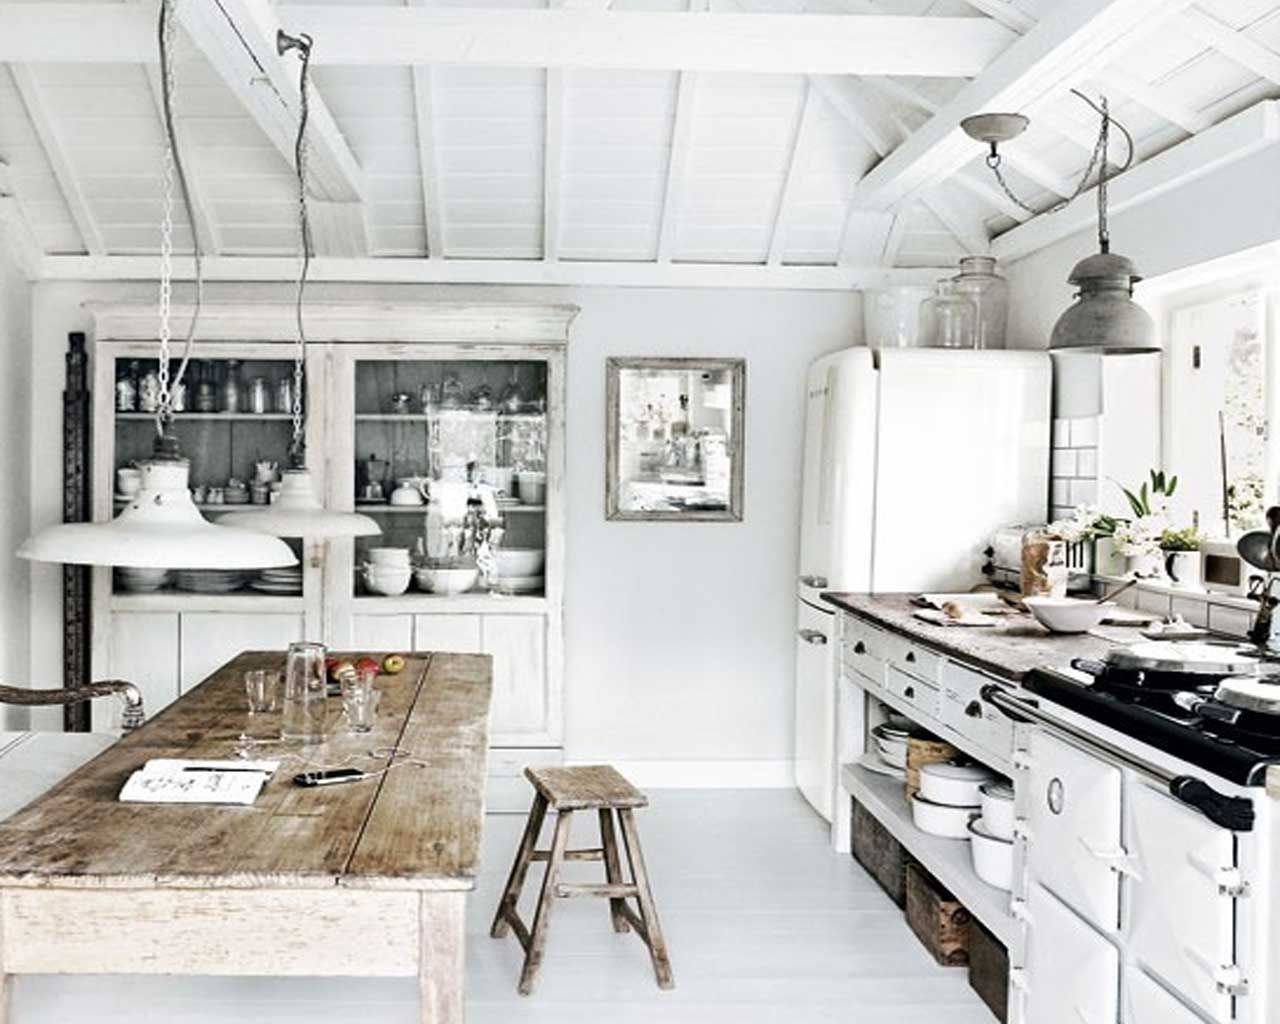 Rustic White Kitchens rustic cottage kitchen interiors design in whi #5175 | modern home